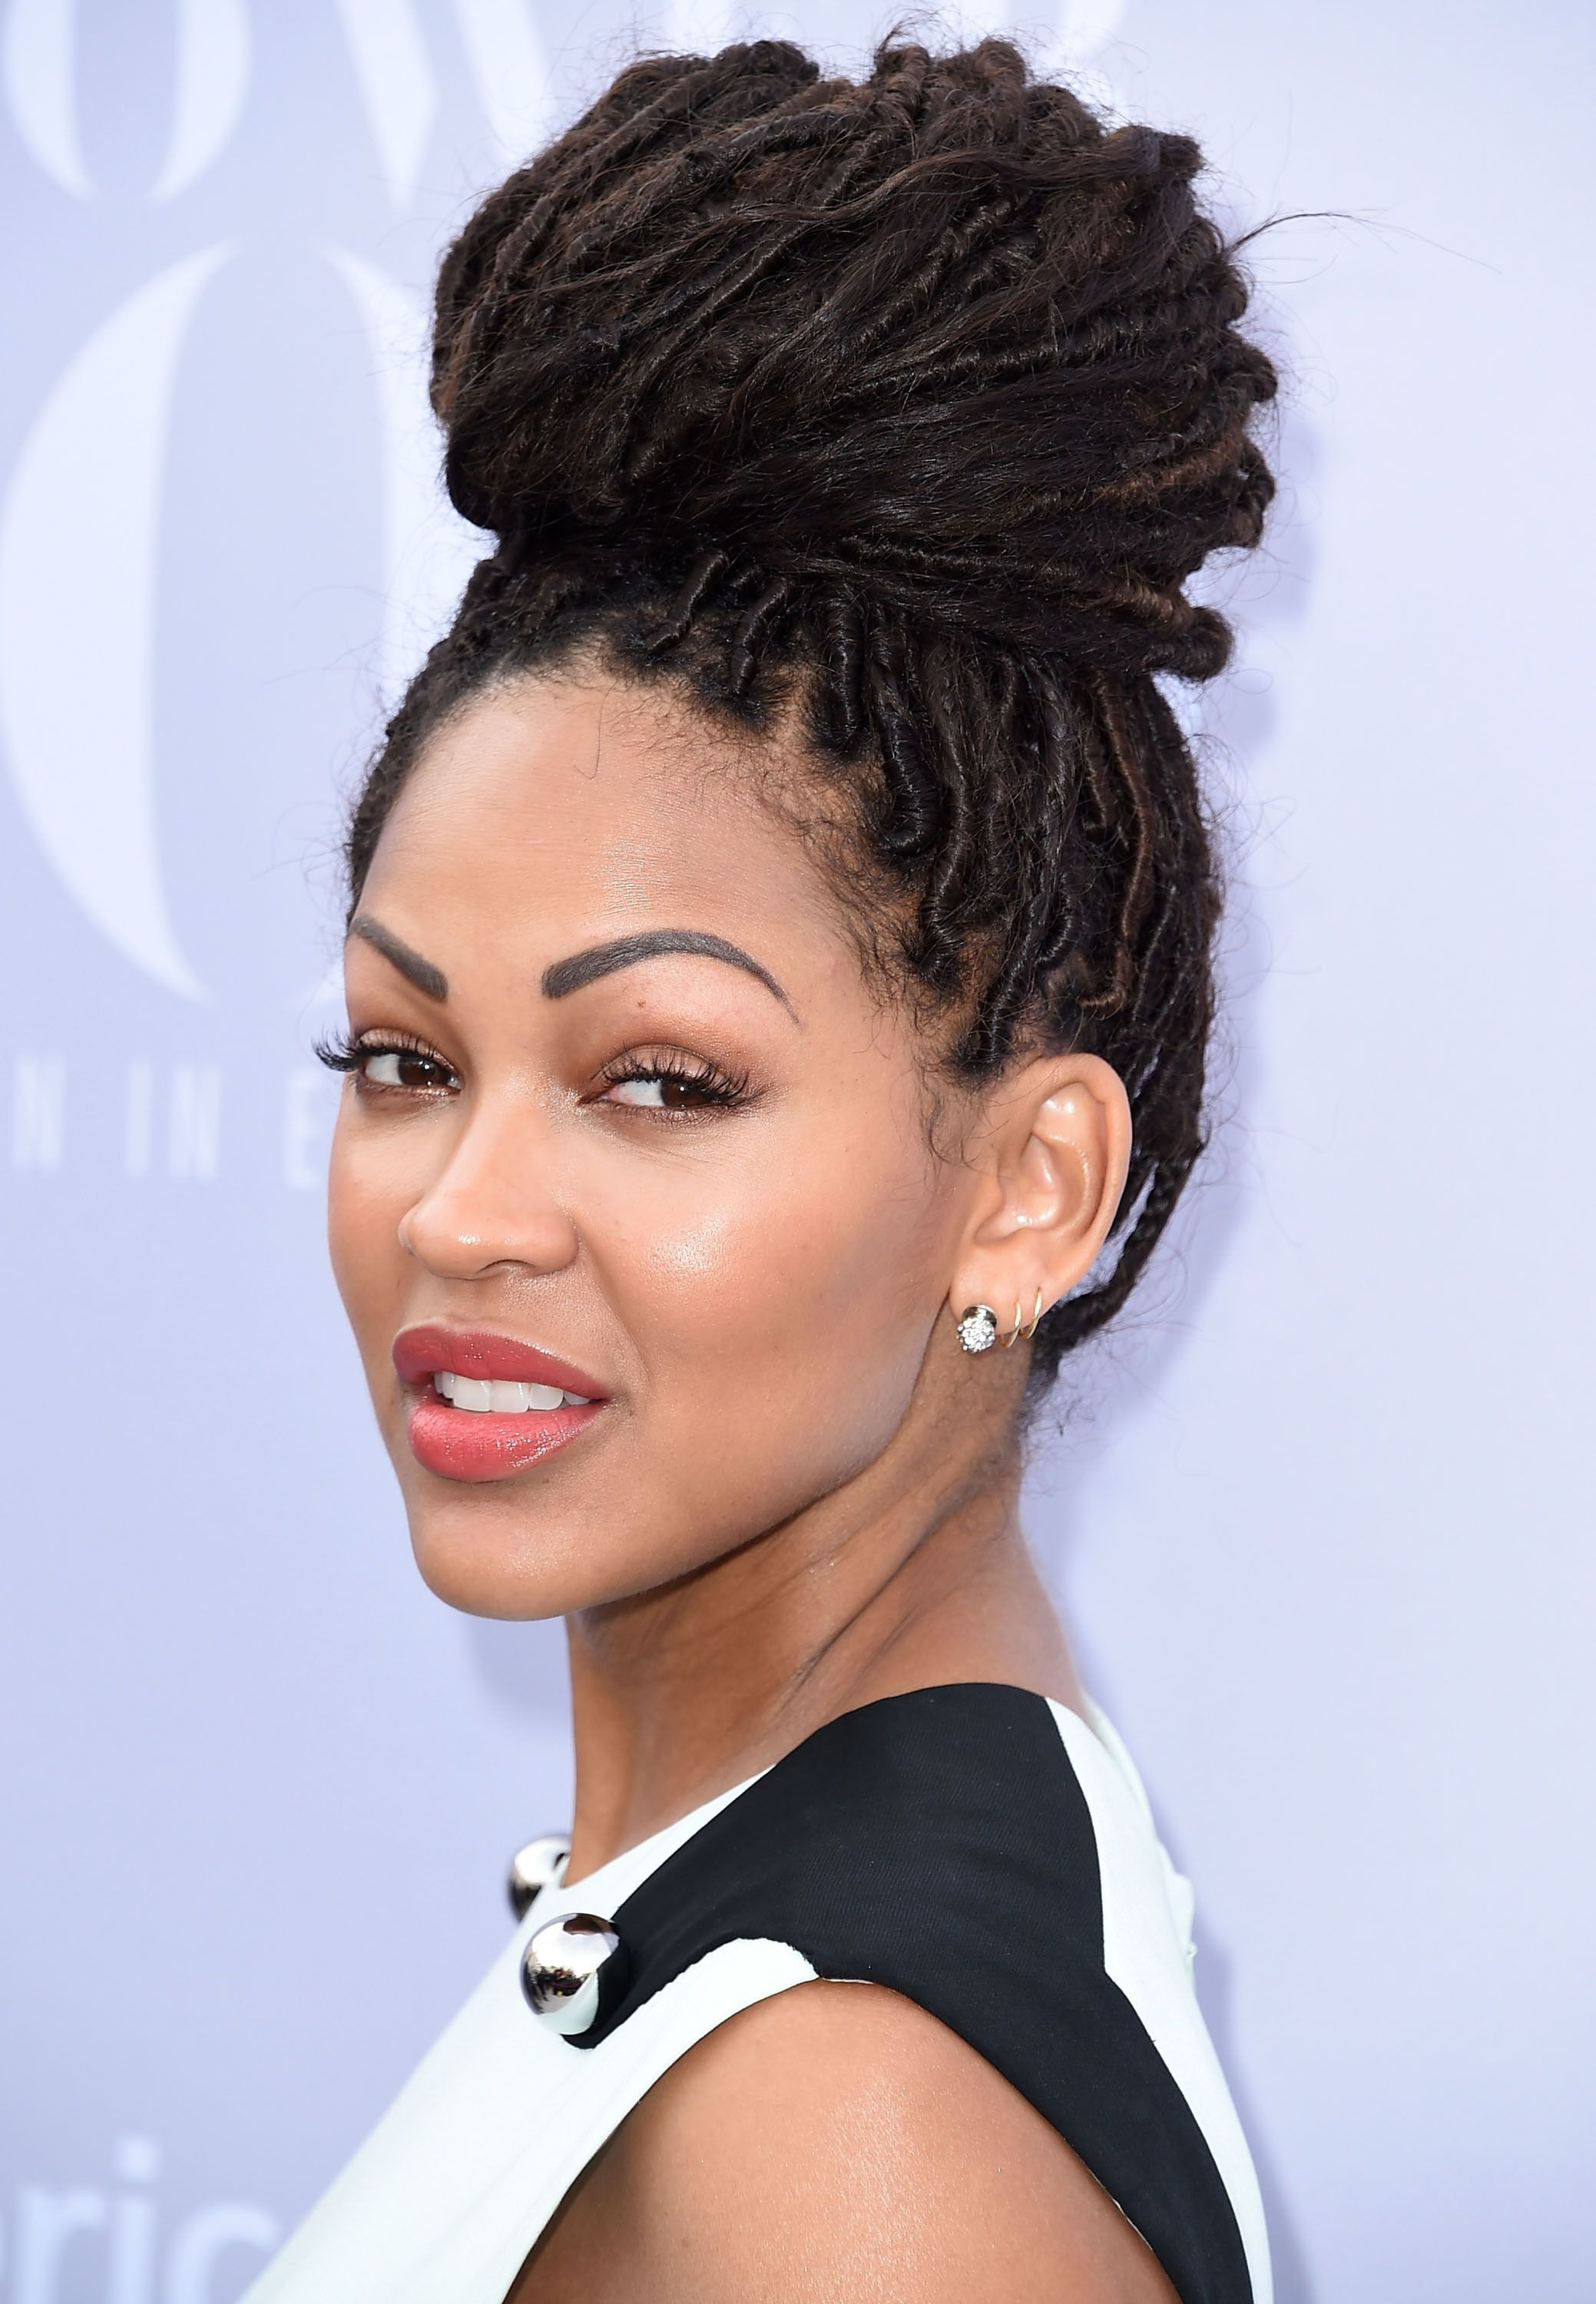 Meagan goodv luv luv her hair cant wait to do my hair 10 gorgeous dreadlocks hairstyles youll want to copy meagan good pmusecretfo Gallery